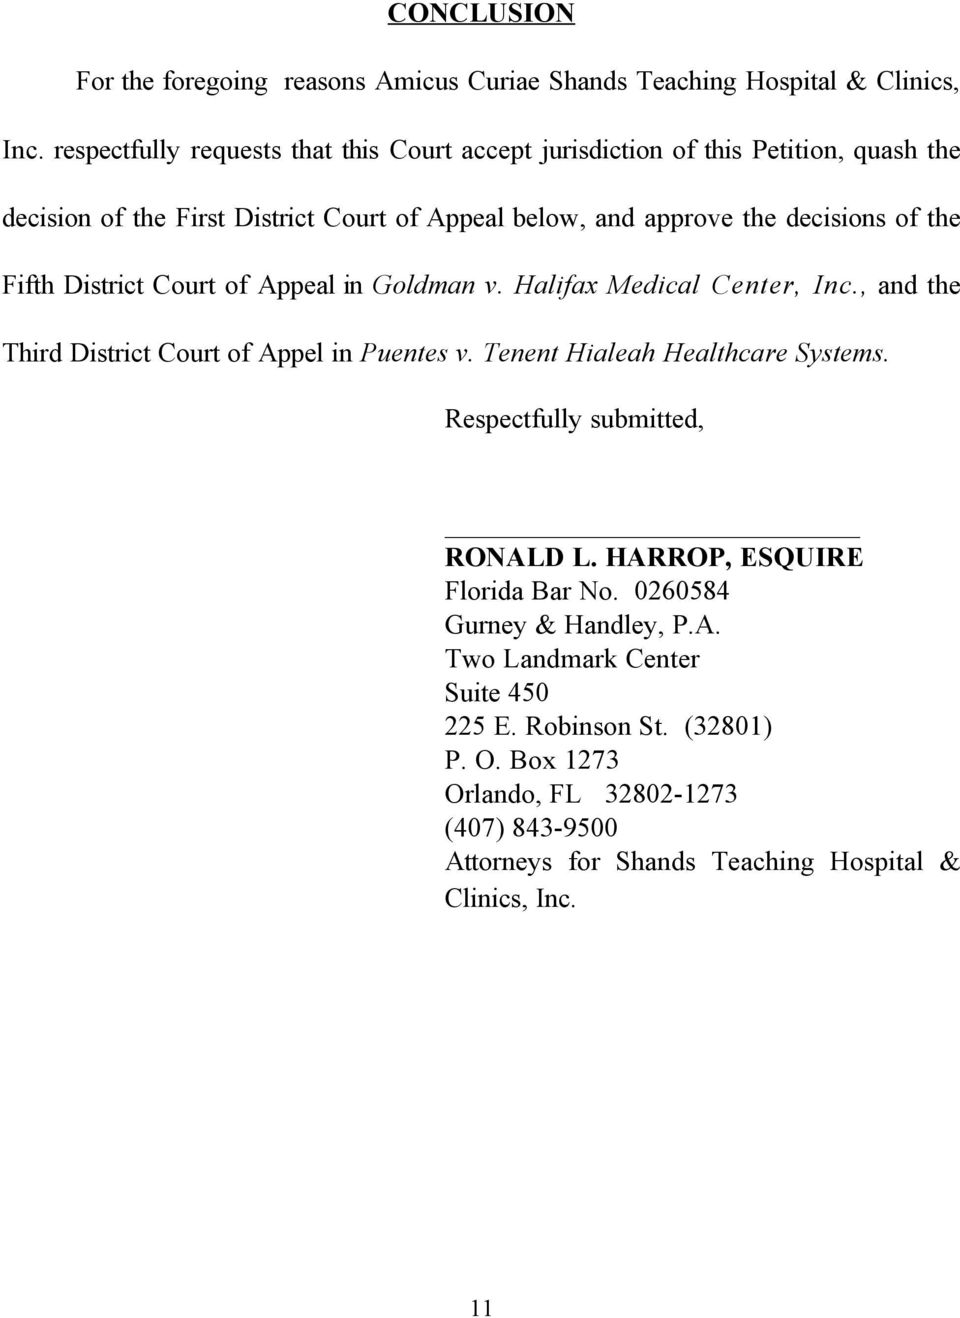 Fifth District Court of Appeal in Goldman v. Halifax Medical Center, Inc., and the Third District Court of Appel in Puentes v. Tenent Hialeah Healthcare Systems.